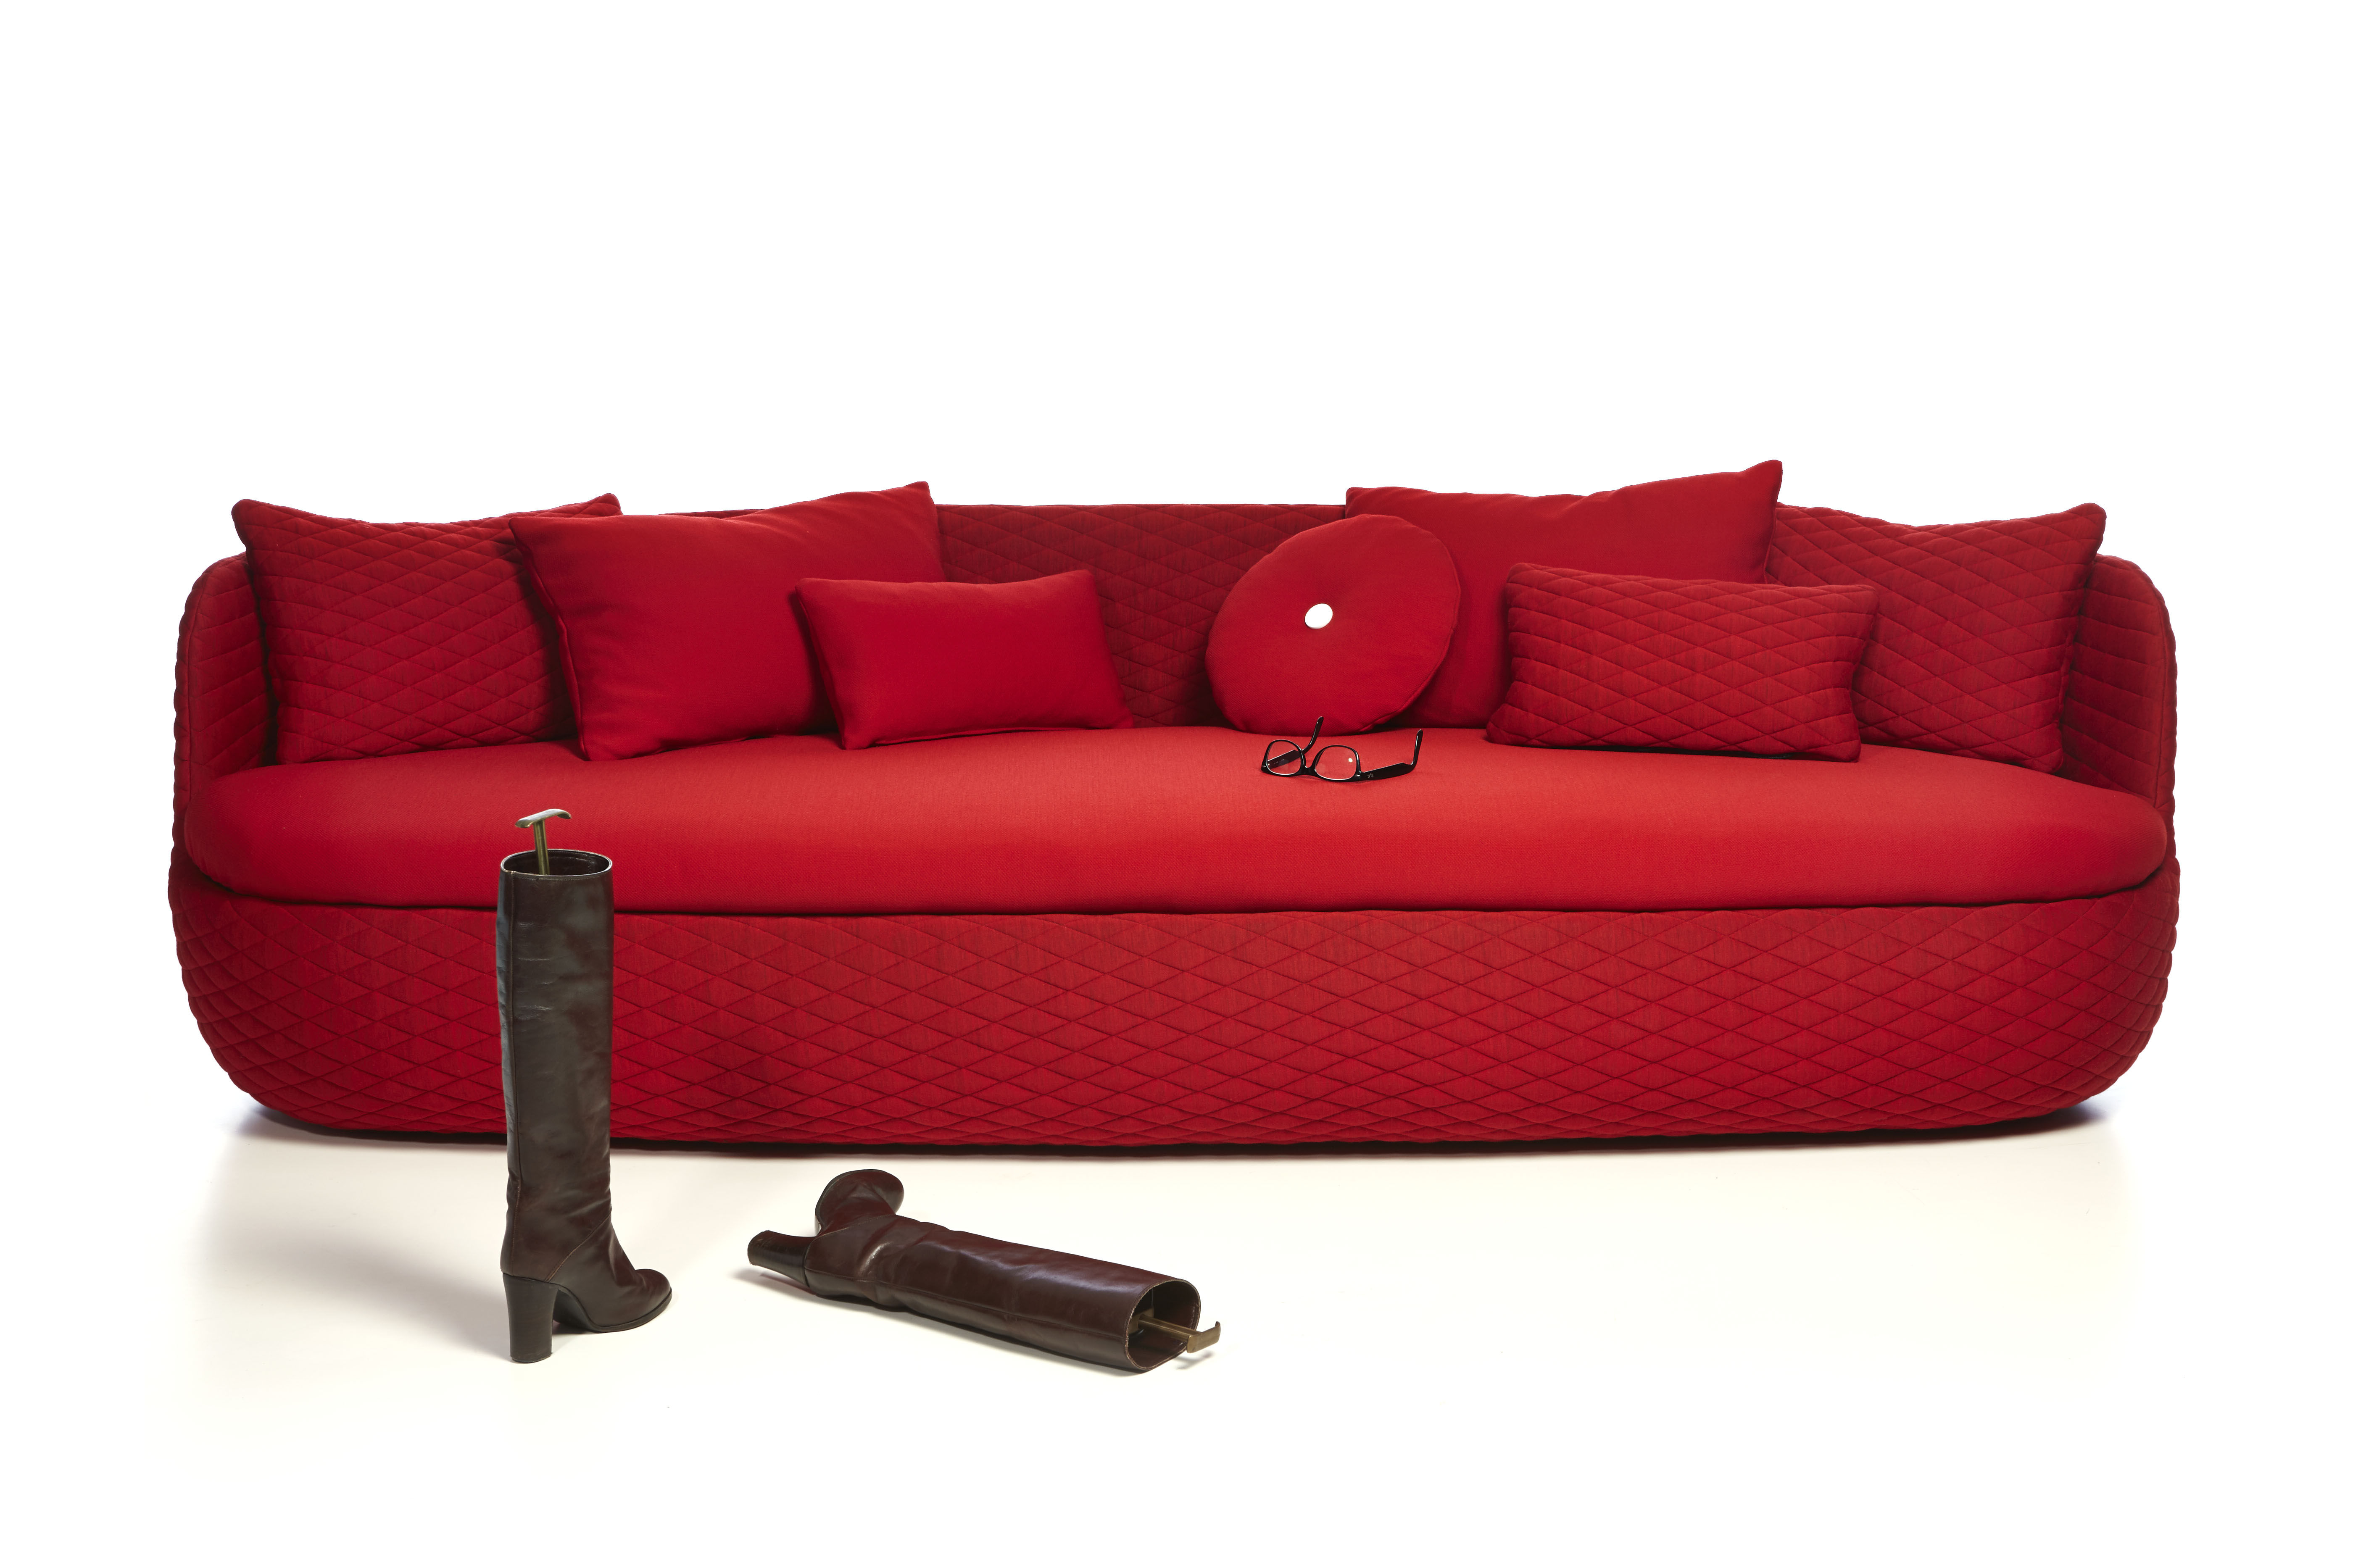 Bart Straight sofa Passion red by Moooi